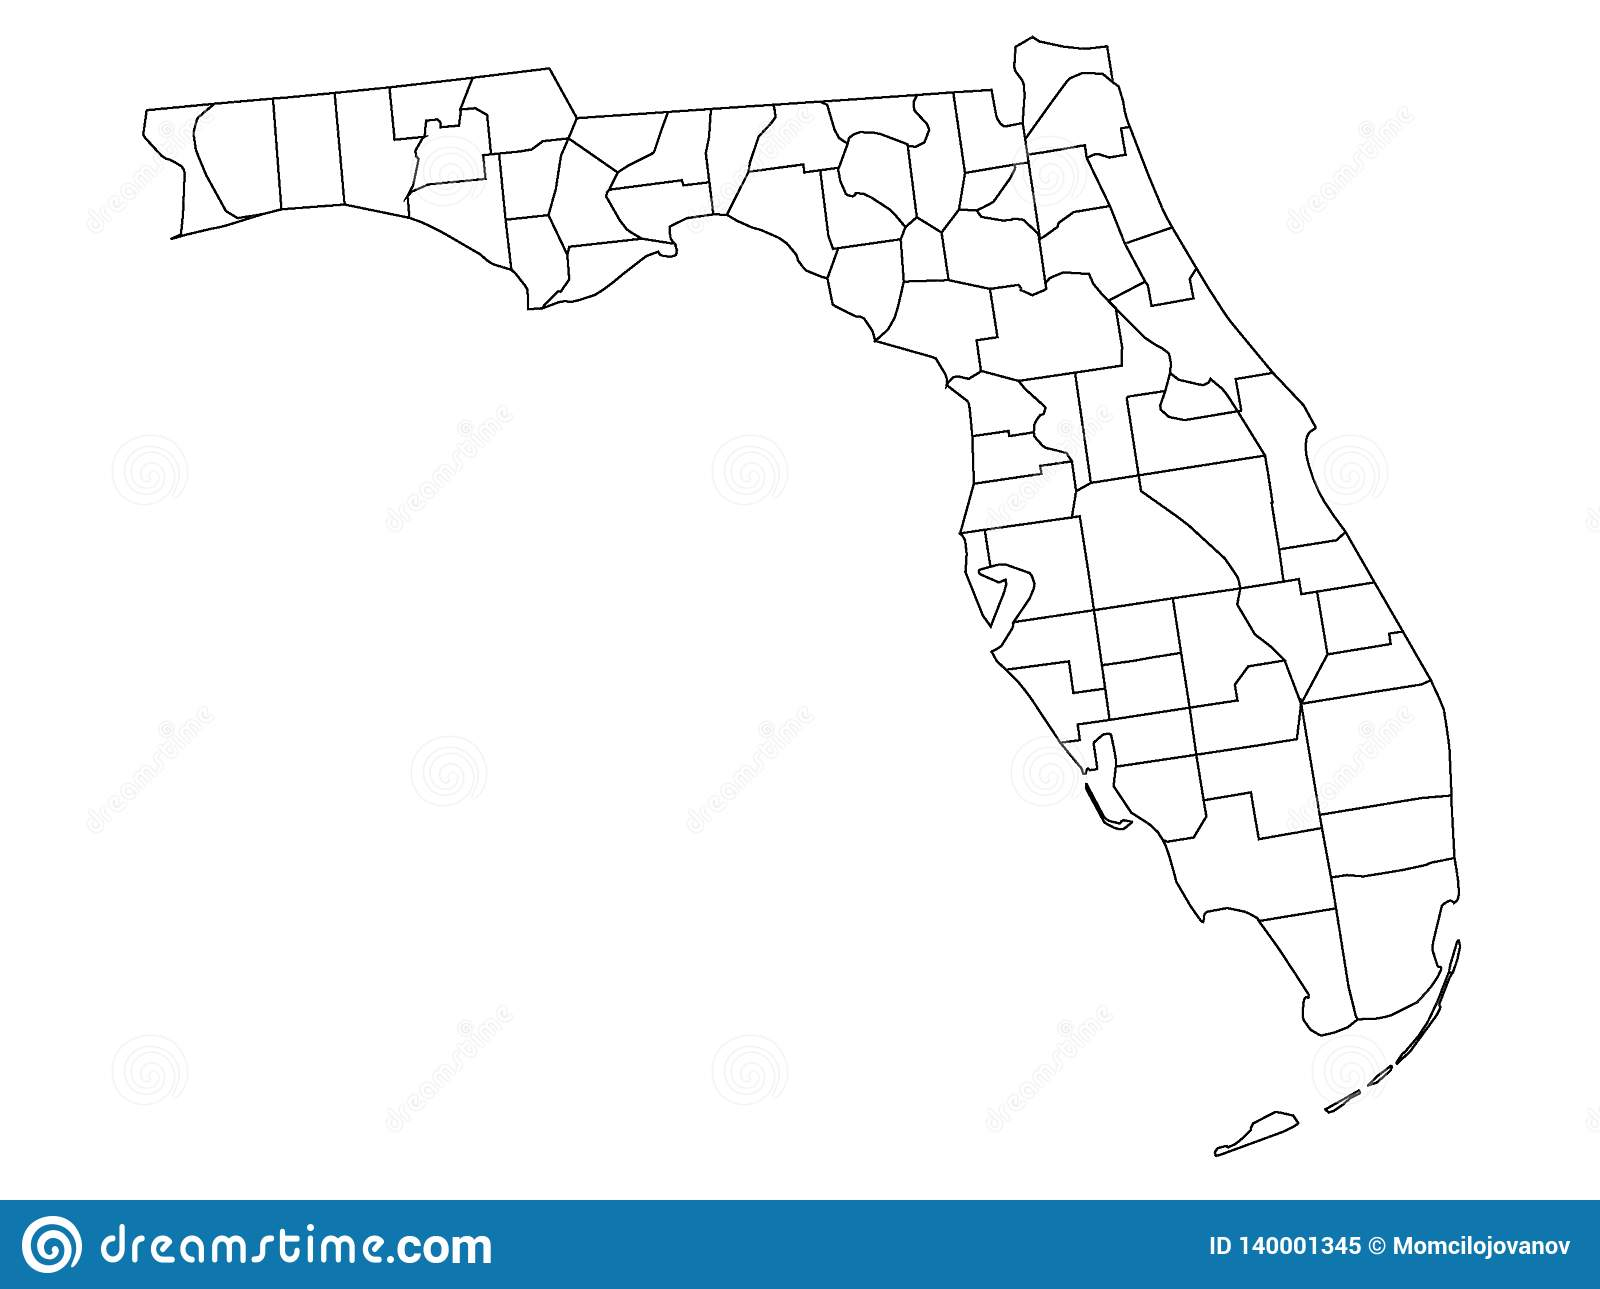 Counties Map Of US State Of Florida Stock Vector - Illustration of ...